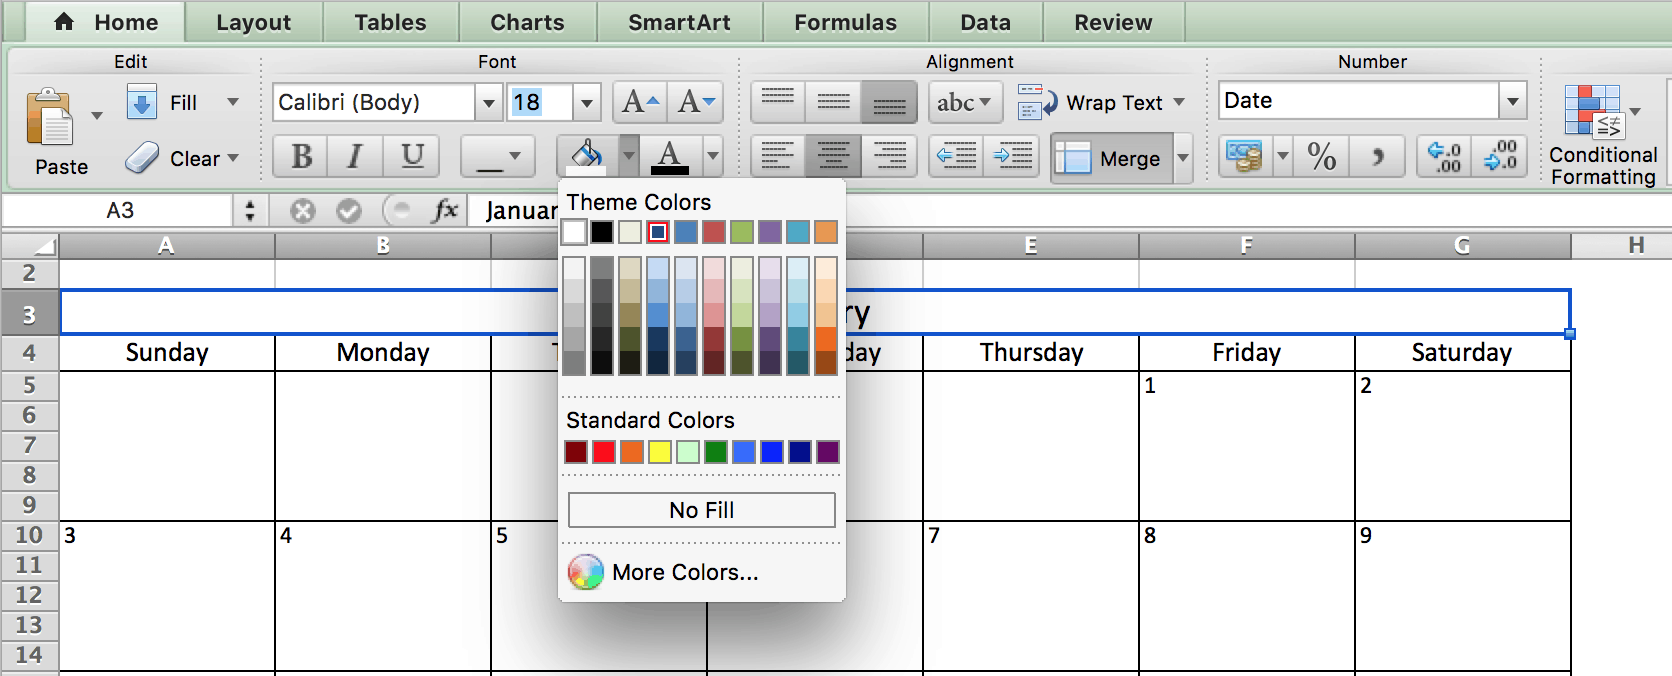 Ediblewildsus  Unique Make A  Calendar In Excel Includes Free Template With Inspiring Choosing Colors  Calendar In Excel With Nice Remove Leading Spaces In Excel Also Average Function Excel In Addition Percent Difference Excel And Excel Range Function As Well As Creating Graphs In Excel Additionally Excel Recycling From Smartsheetcom With Ediblewildsus  Inspiring Make A  Calendar In Excel Includes Free Template With Nice Choosing Colors  Calendar In Excel And Unique Remove Leading Spaces In Excel Also Average Function Excel In Addition Percent Difference Excel From Smartsheetcom